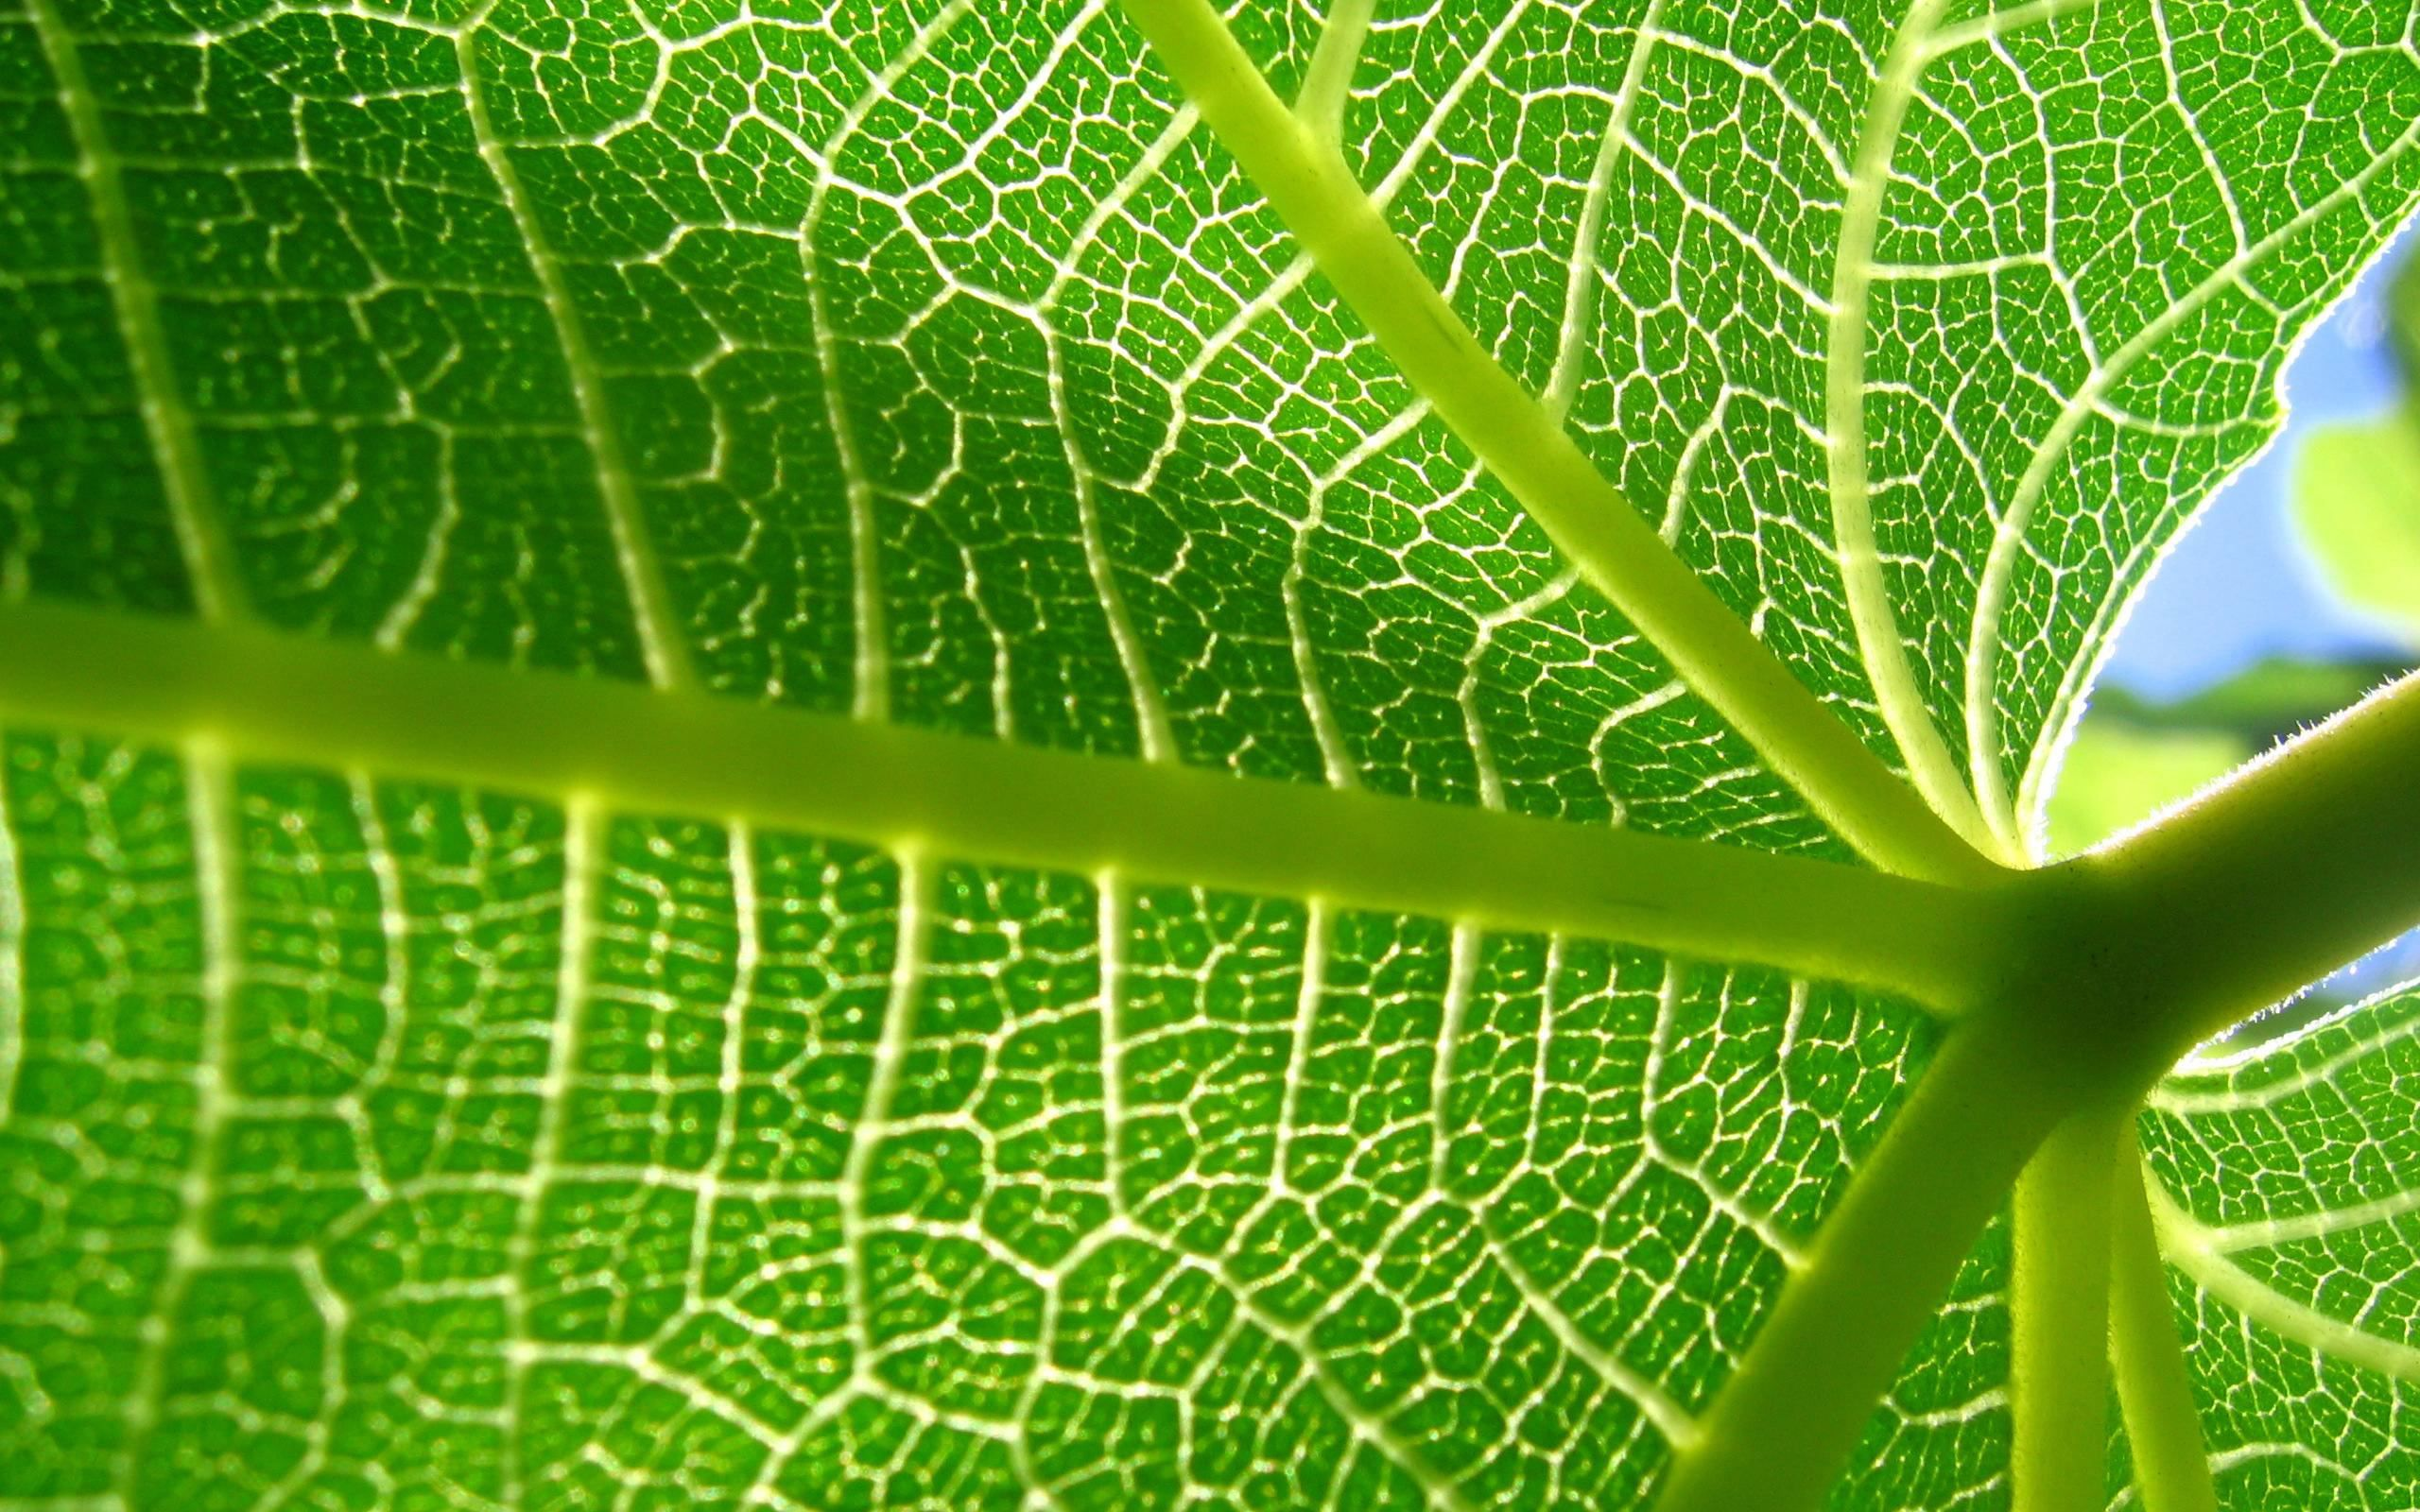 Nature Cell Biology Widescreen 2 HD Wallpapers | Leaves ...